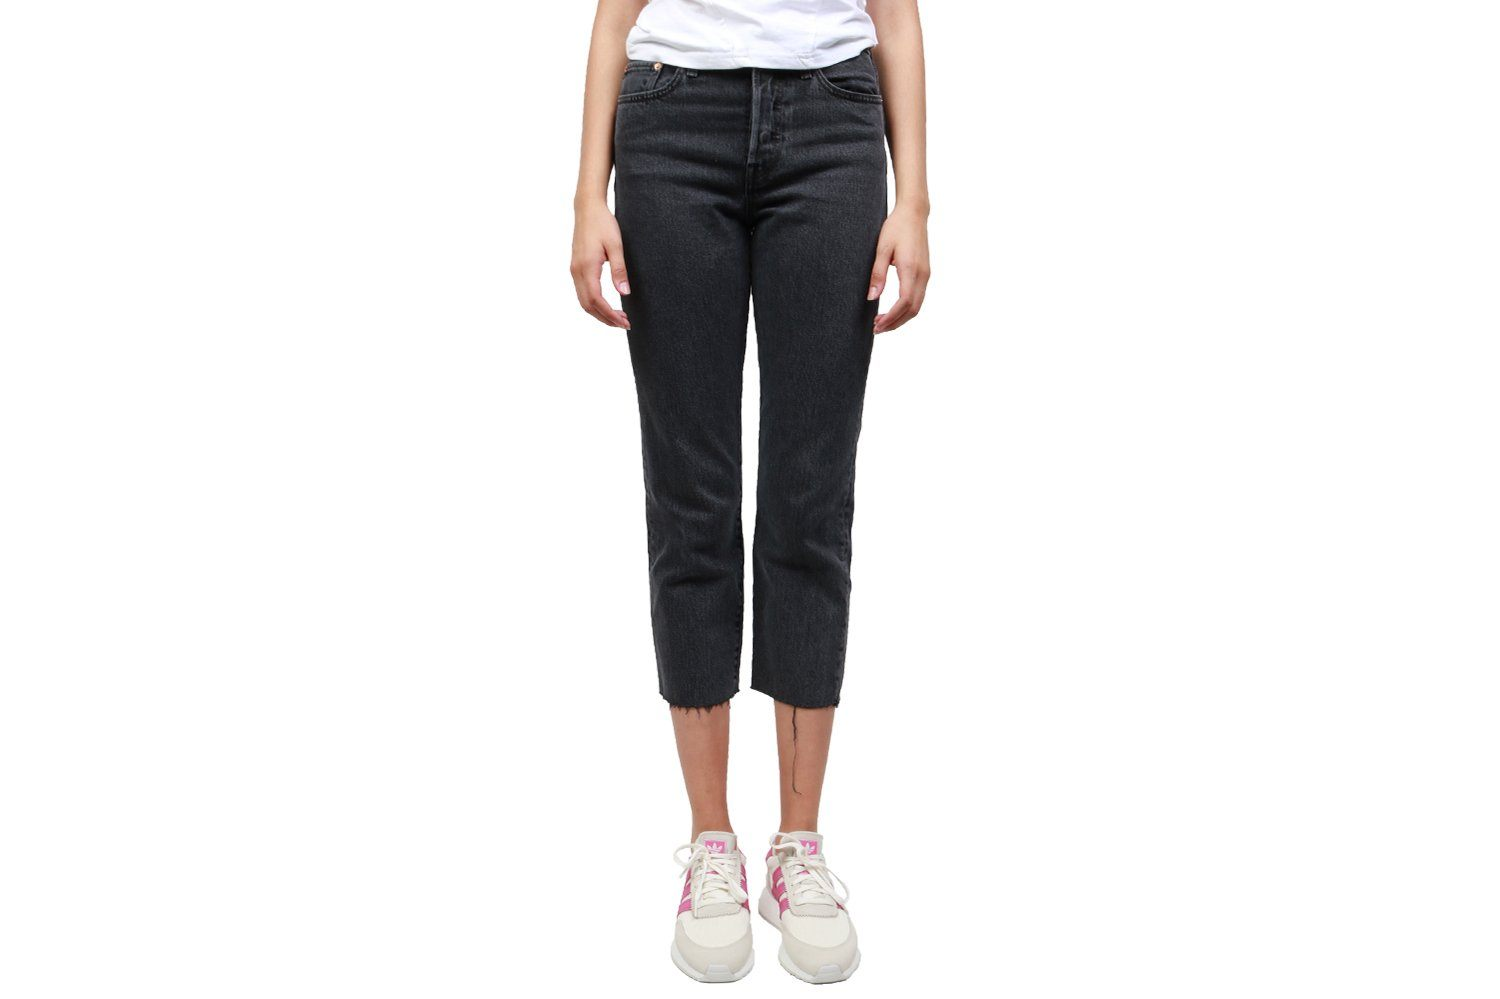 WEDGIE STRAIGHT WOMENS SOFTGOODS LEVIS 3496400040 BLACK 25